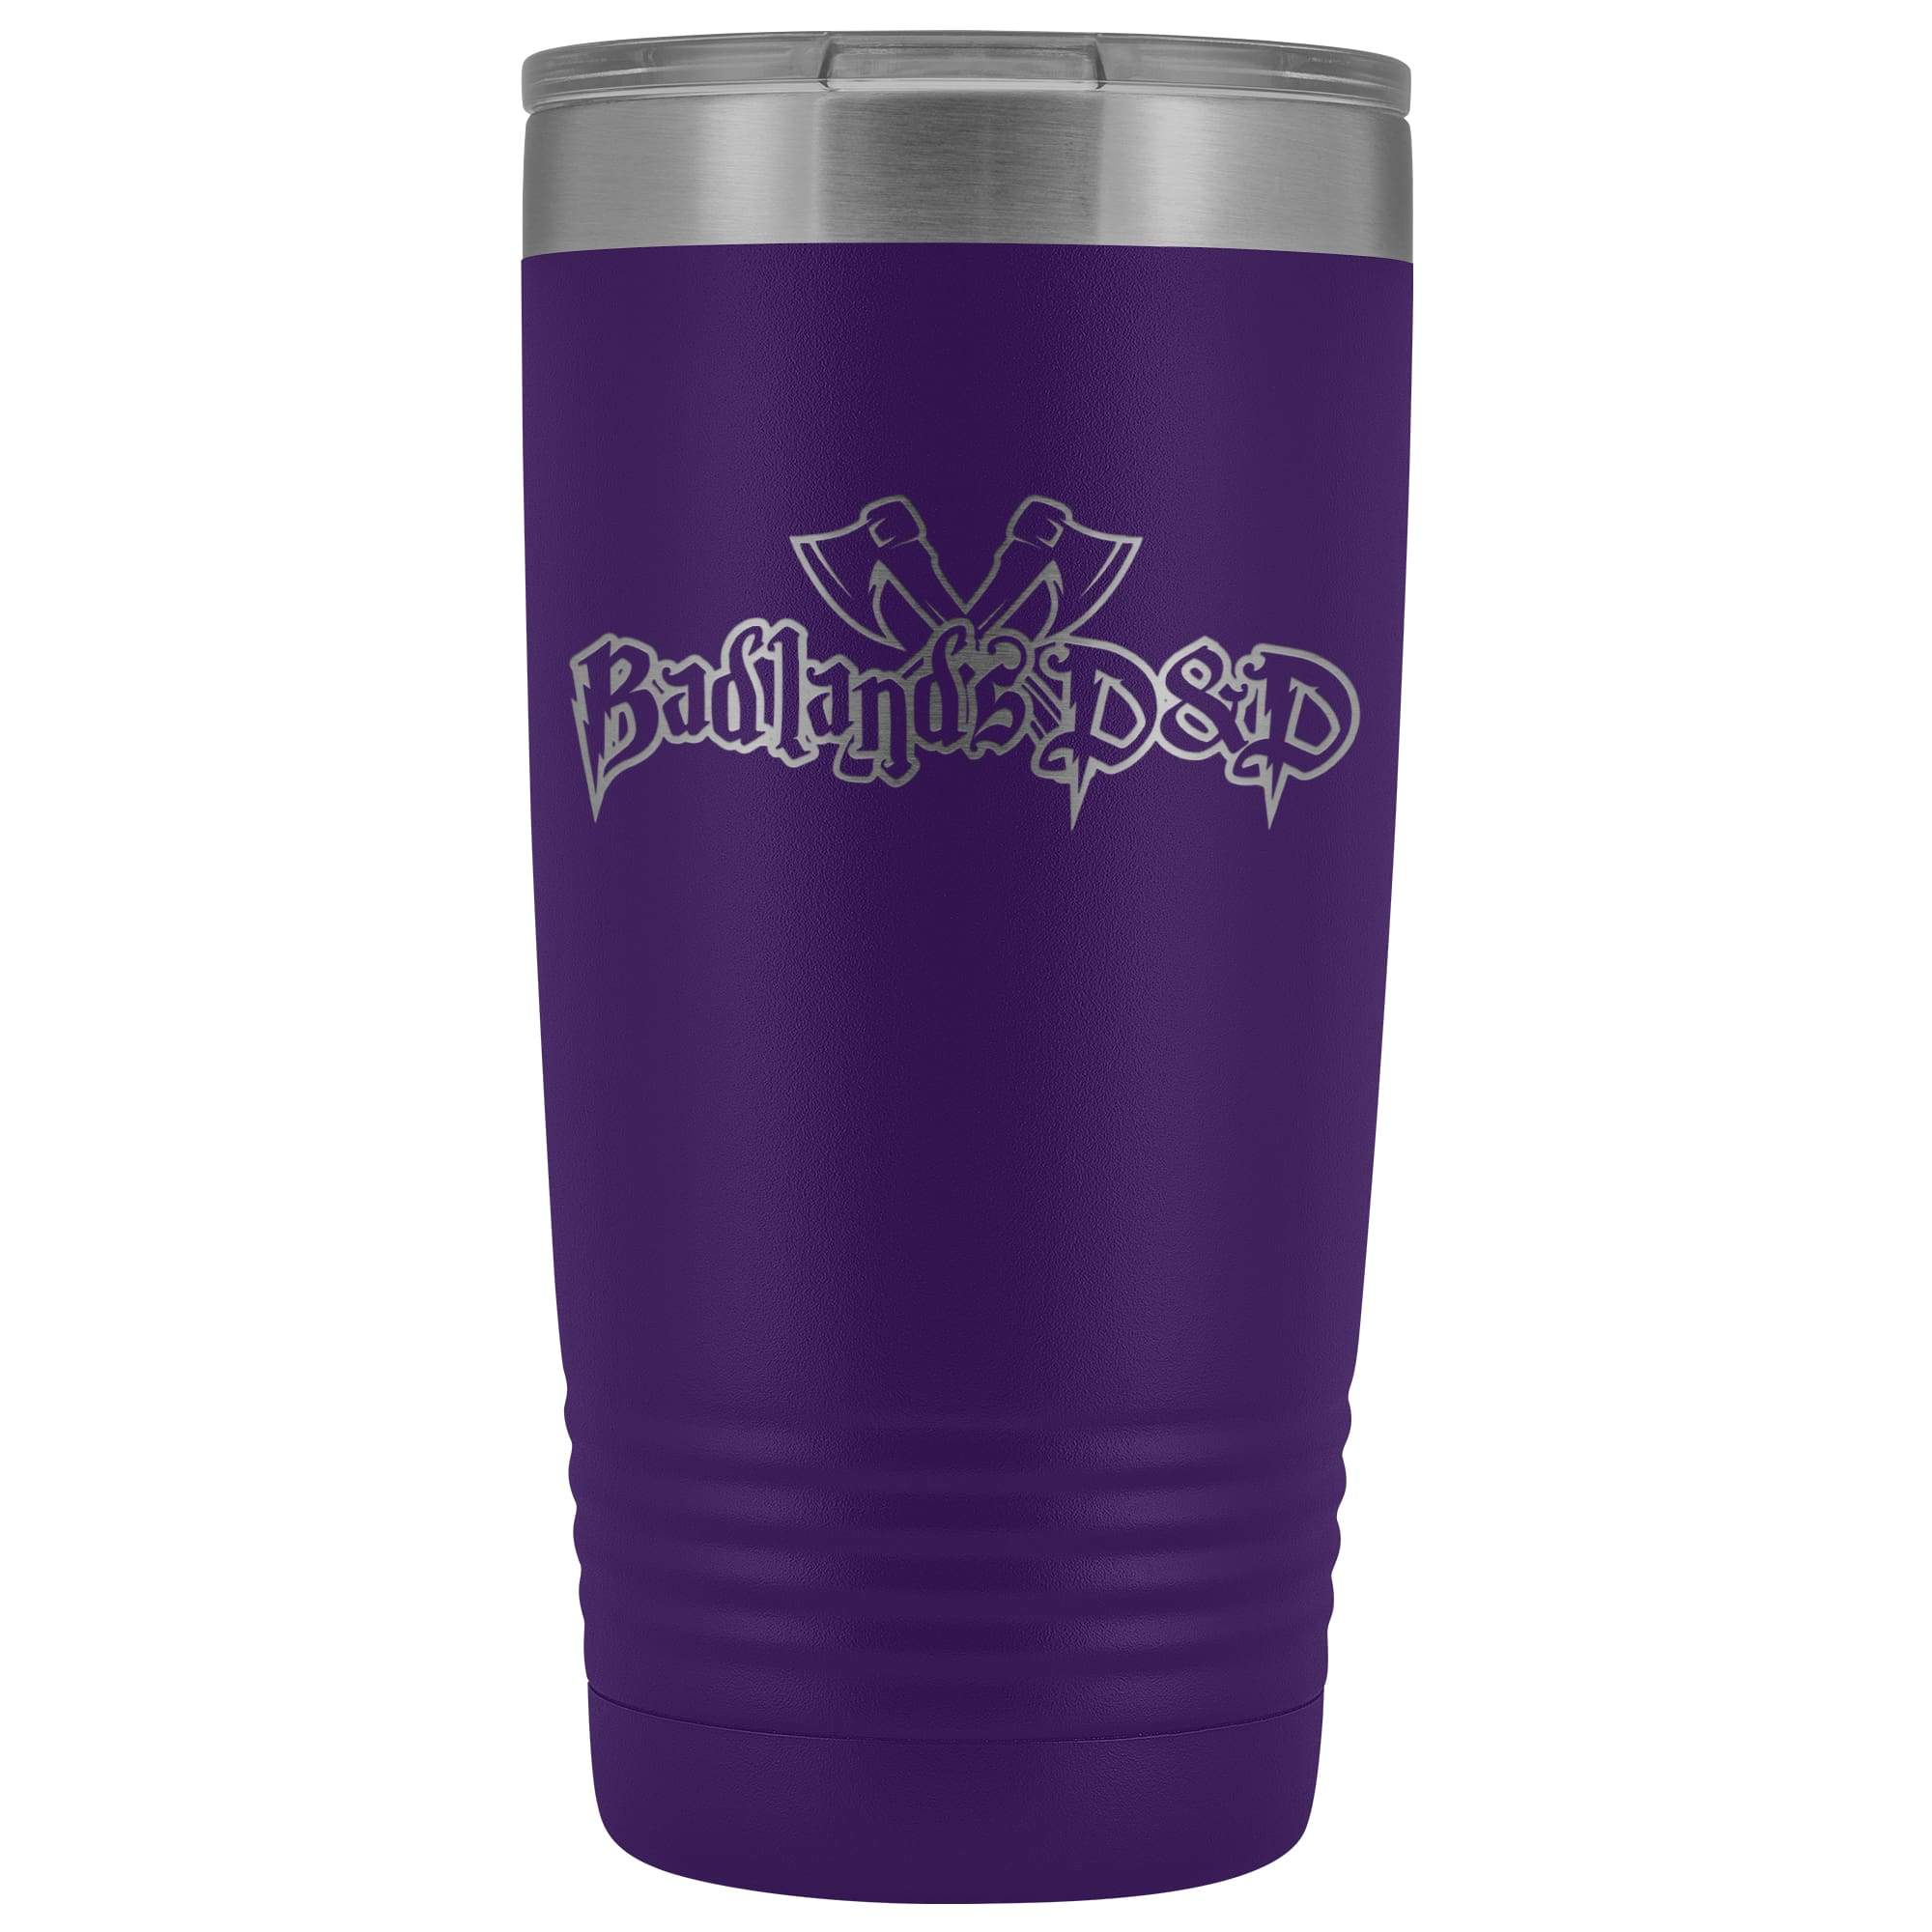 Badlands D&D 20oz Vacuum Tumbler - Purple - Tumblers